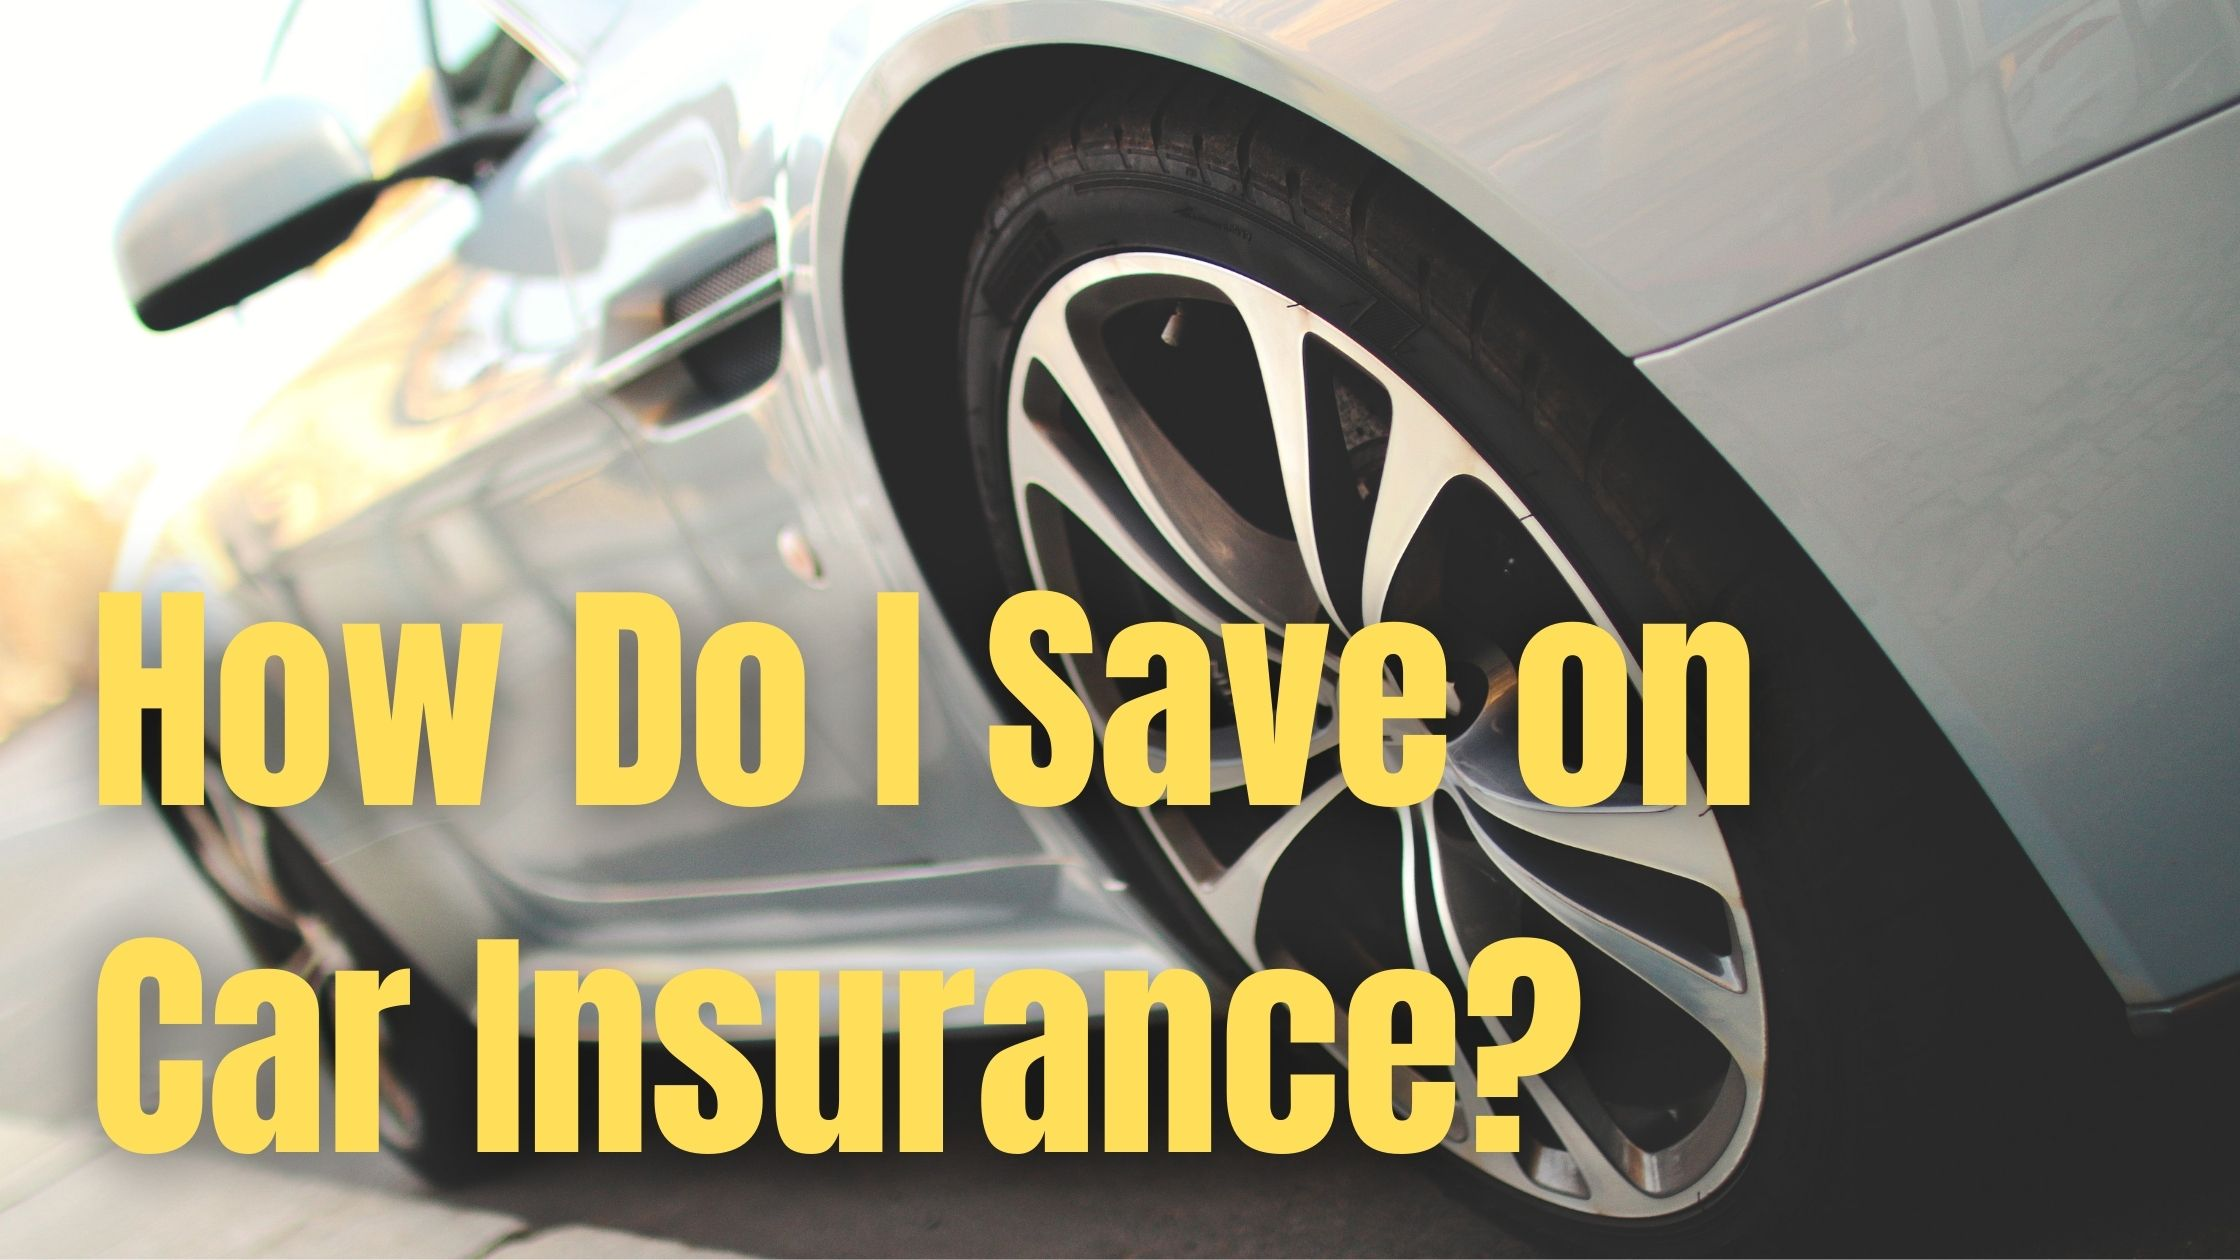 How Do I Save on Car Insurance?